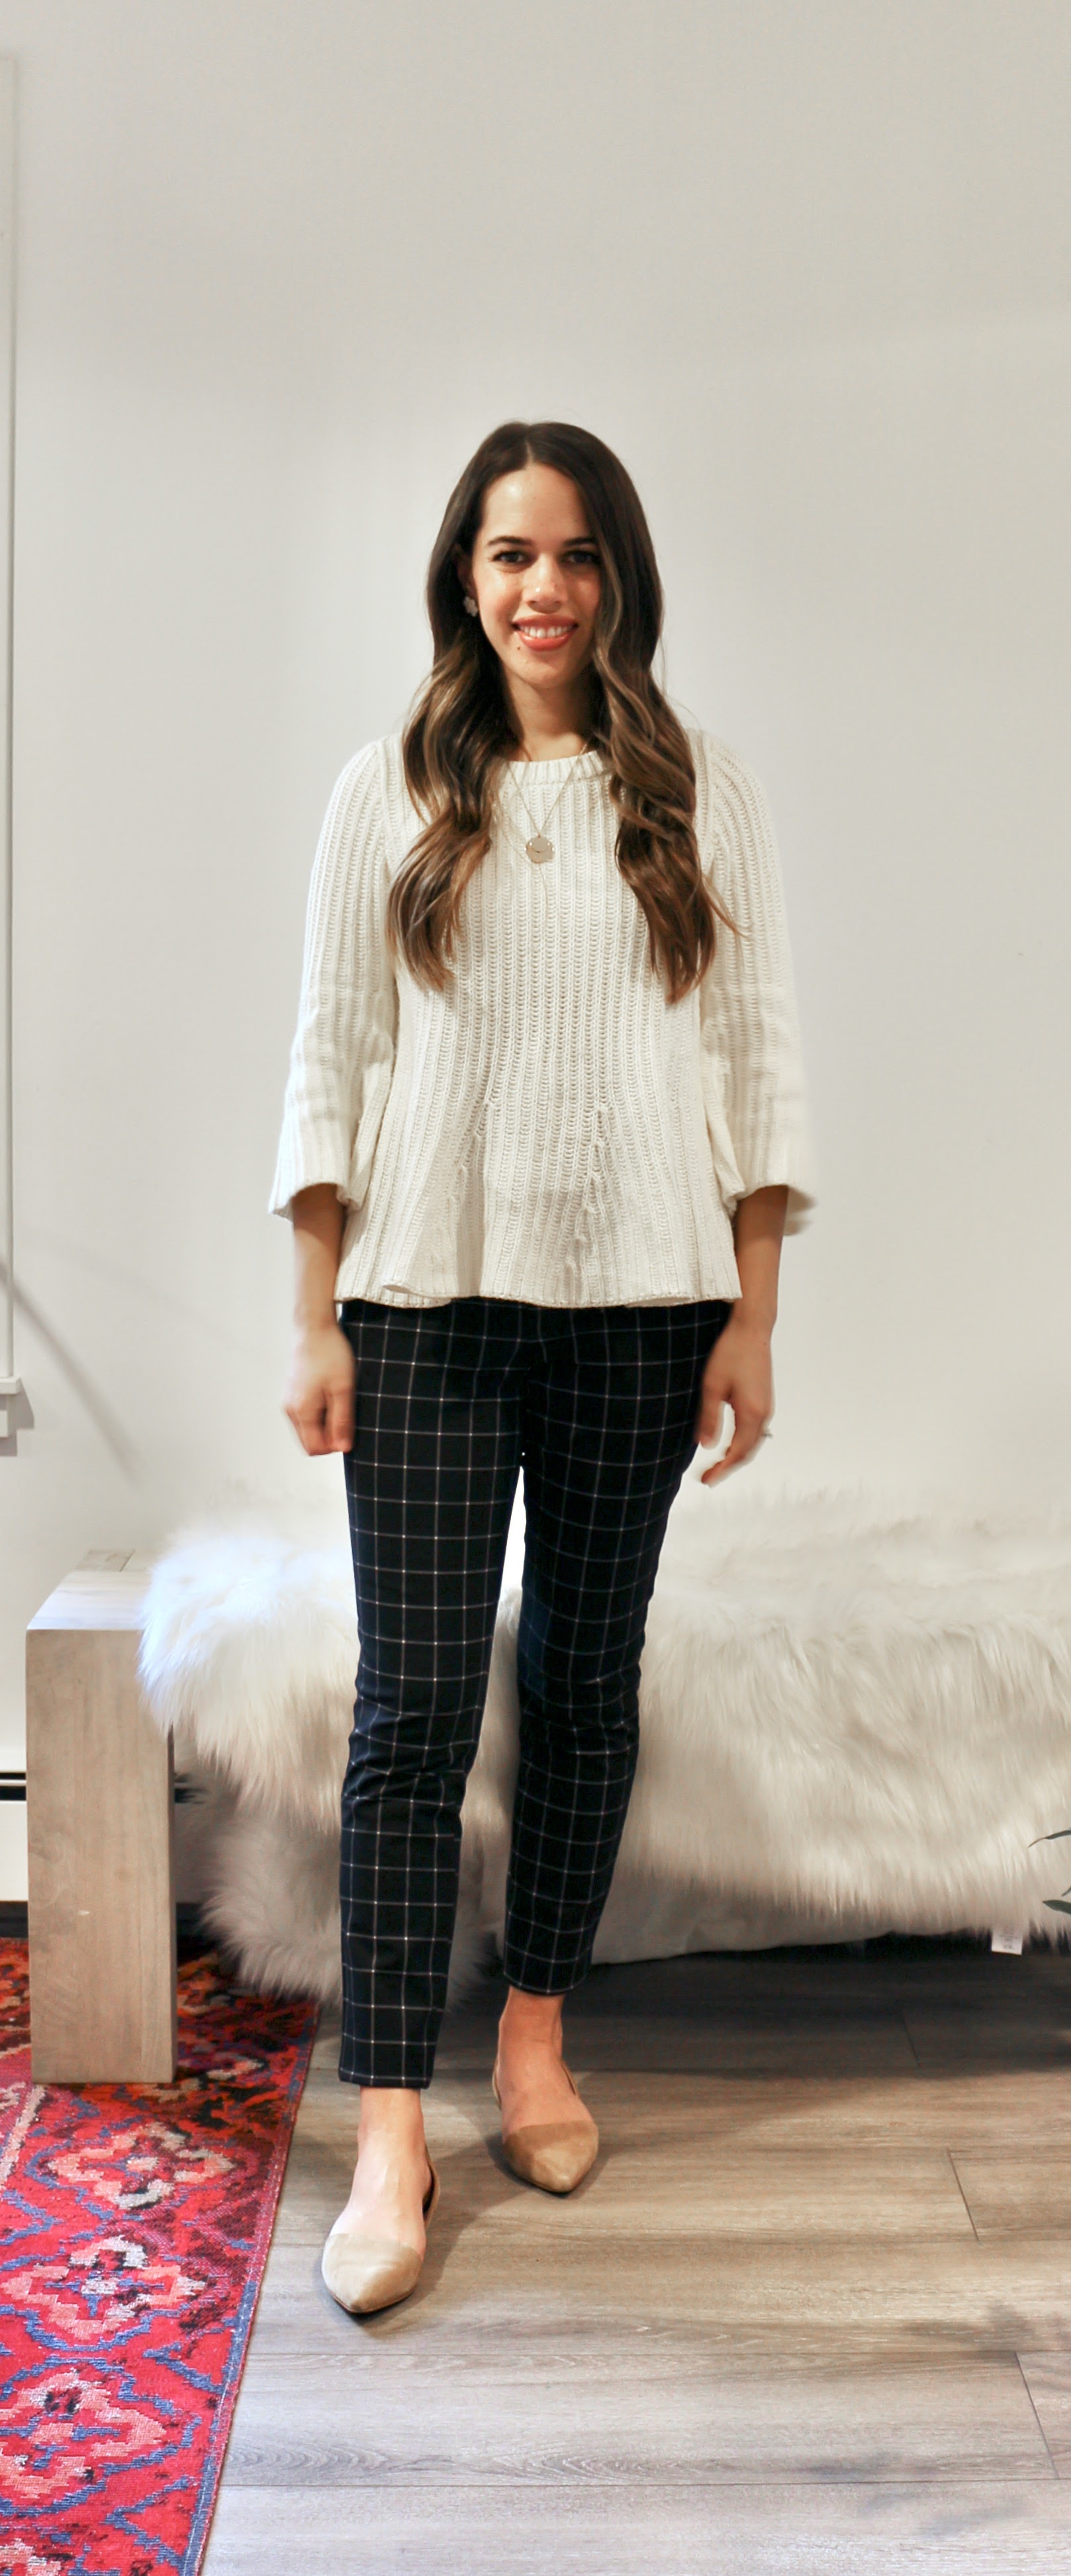 Jules in Flats - Windowpane Ankle Pants (Business Casual Workwear on a Budget)